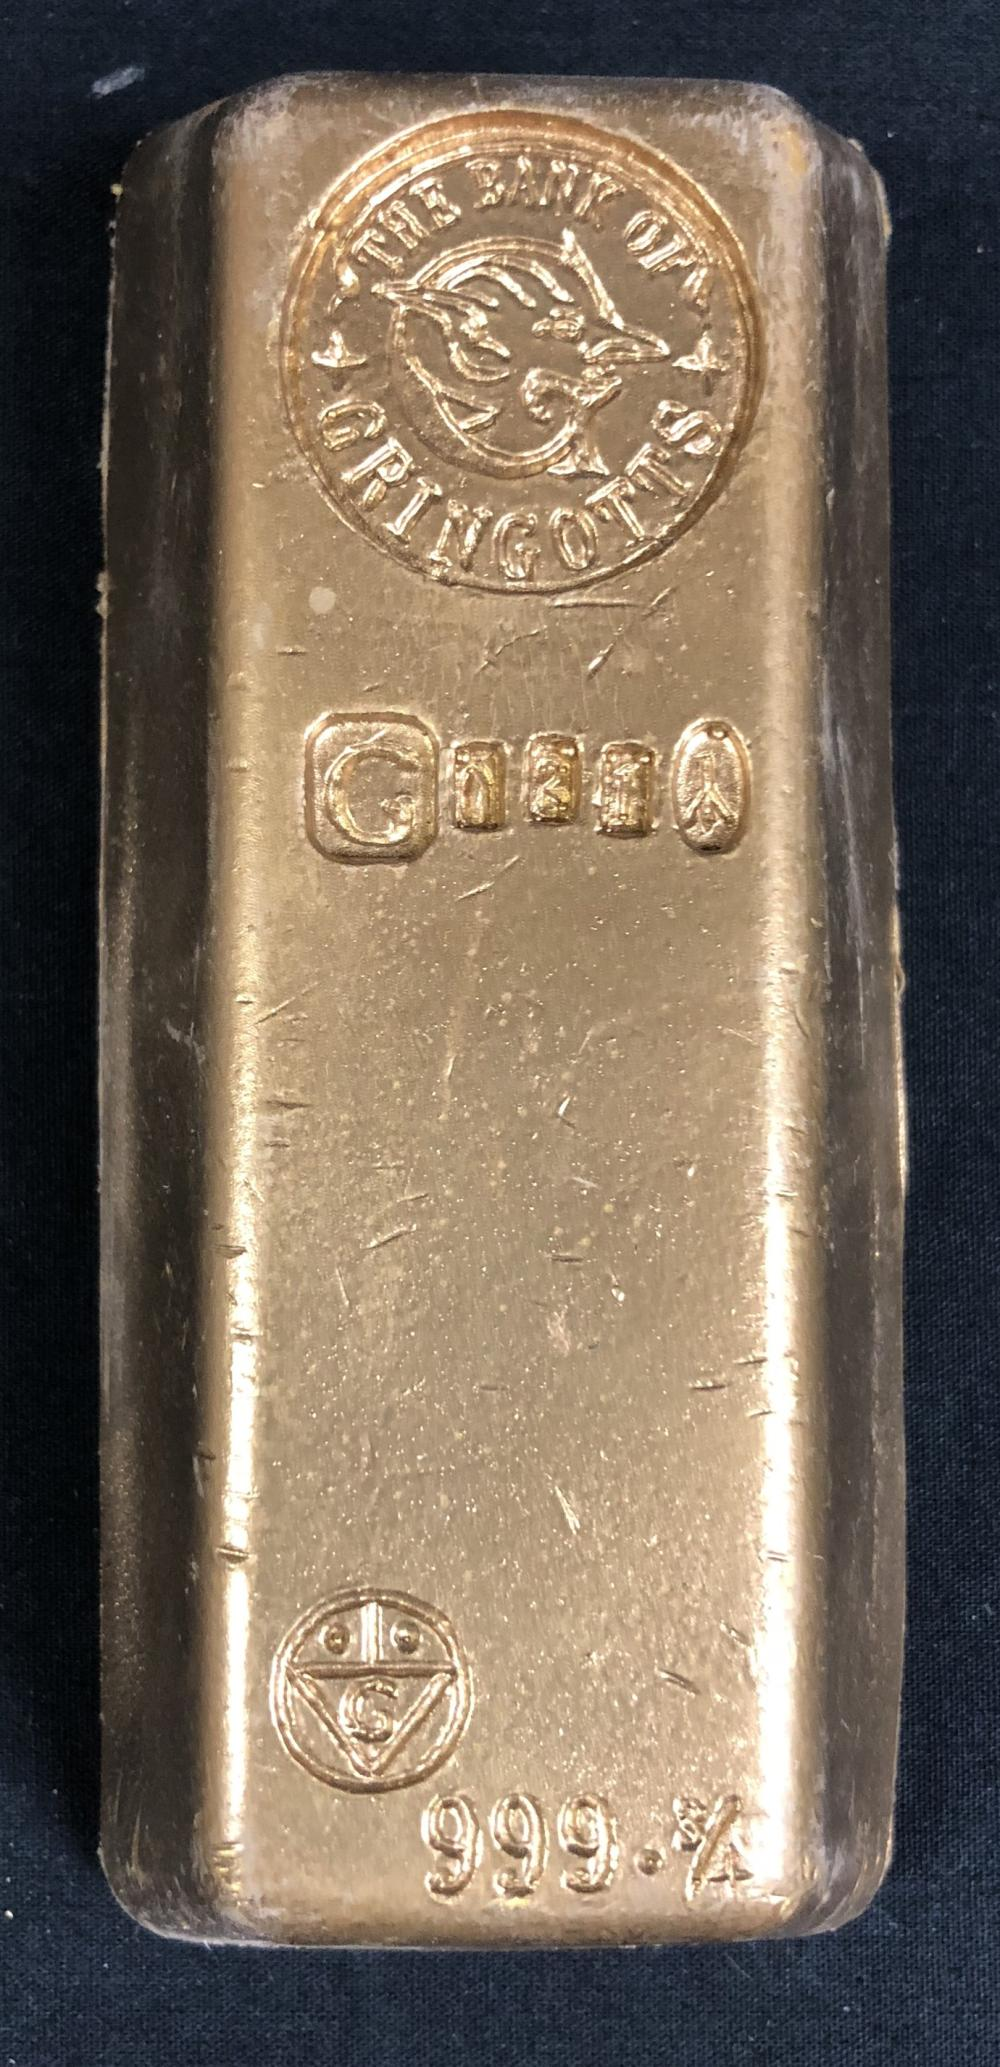 Harry Potter and the Half-Blood Prince (2009) - Gringotts Bank Gold Bar (Small)